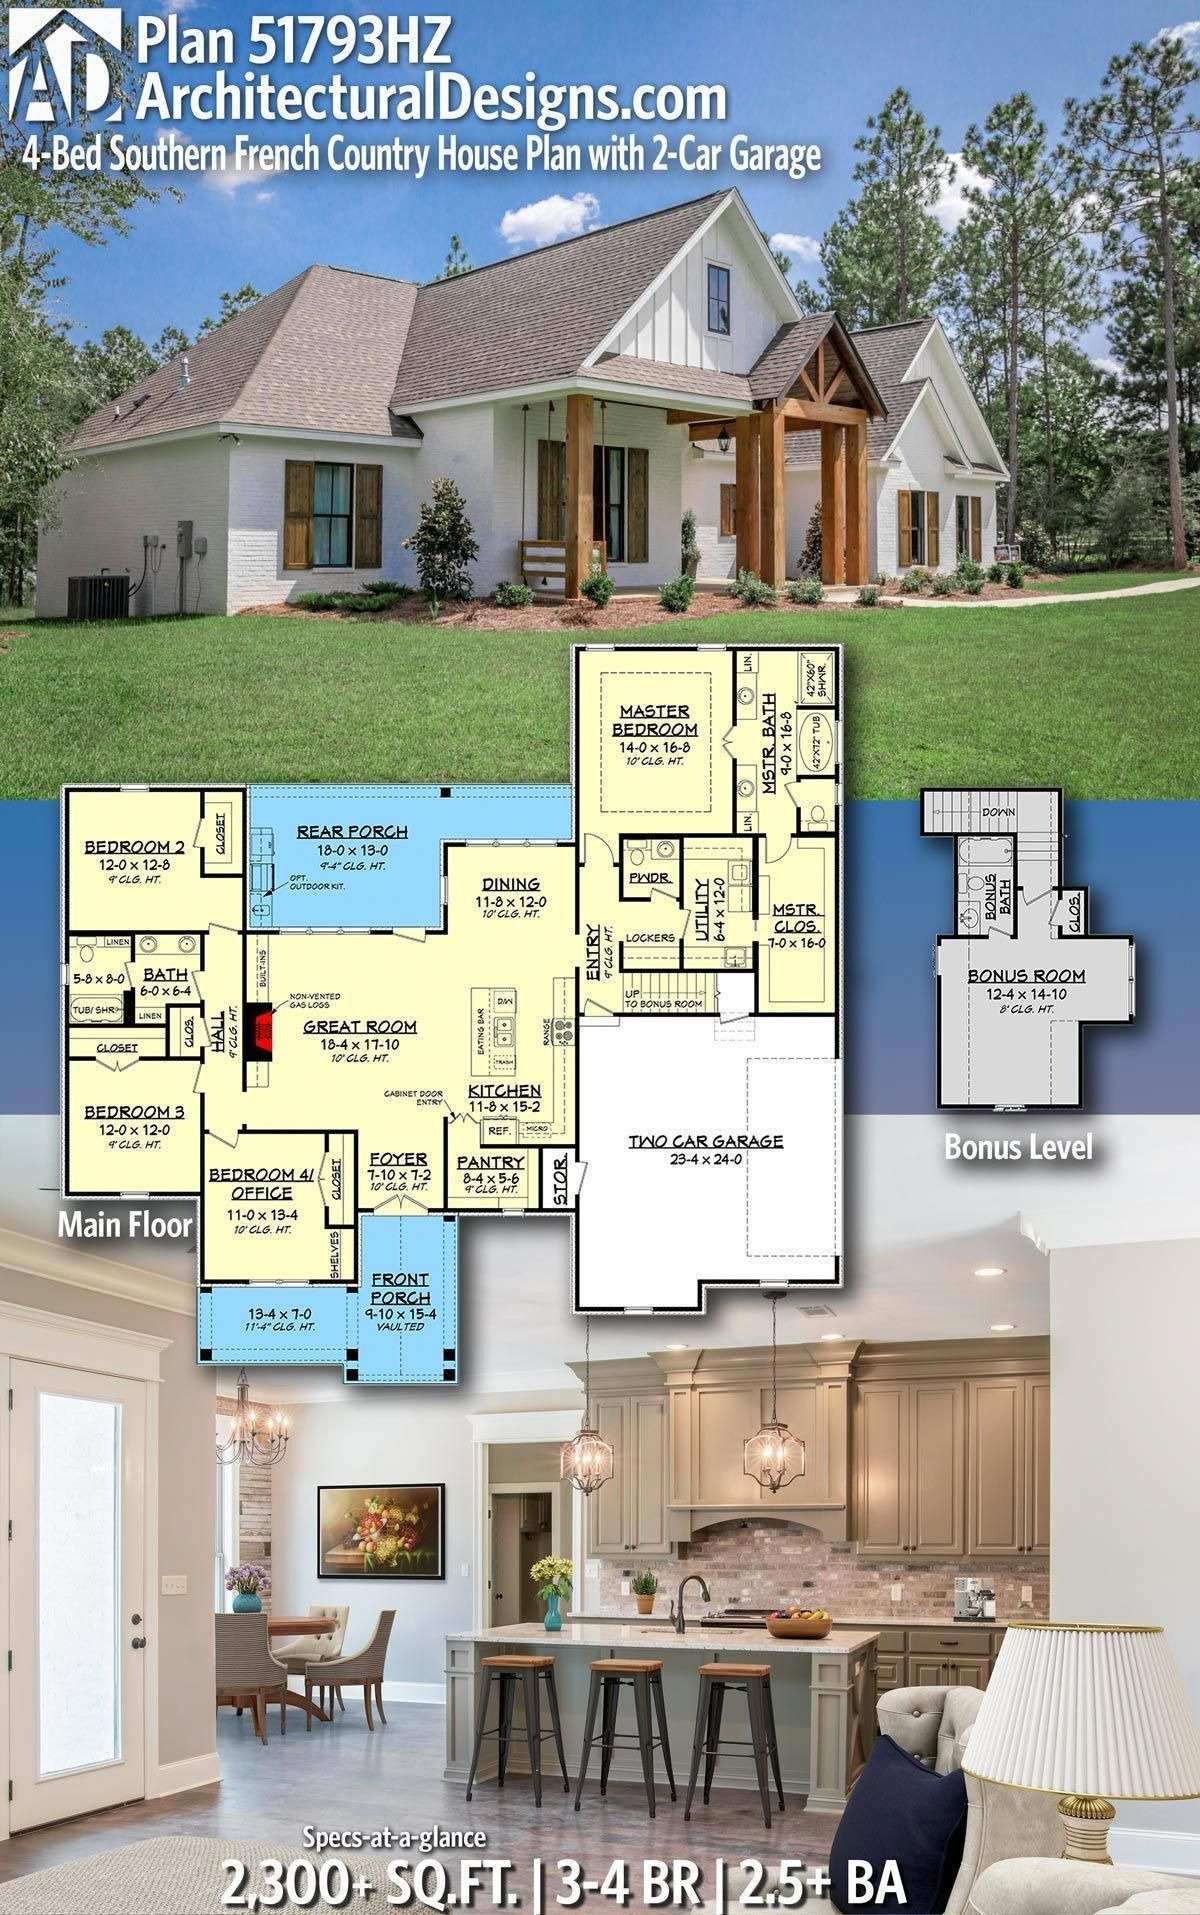 Small French House Plans Lovely Plan Hz 4 Bed southern French Country House Plan with